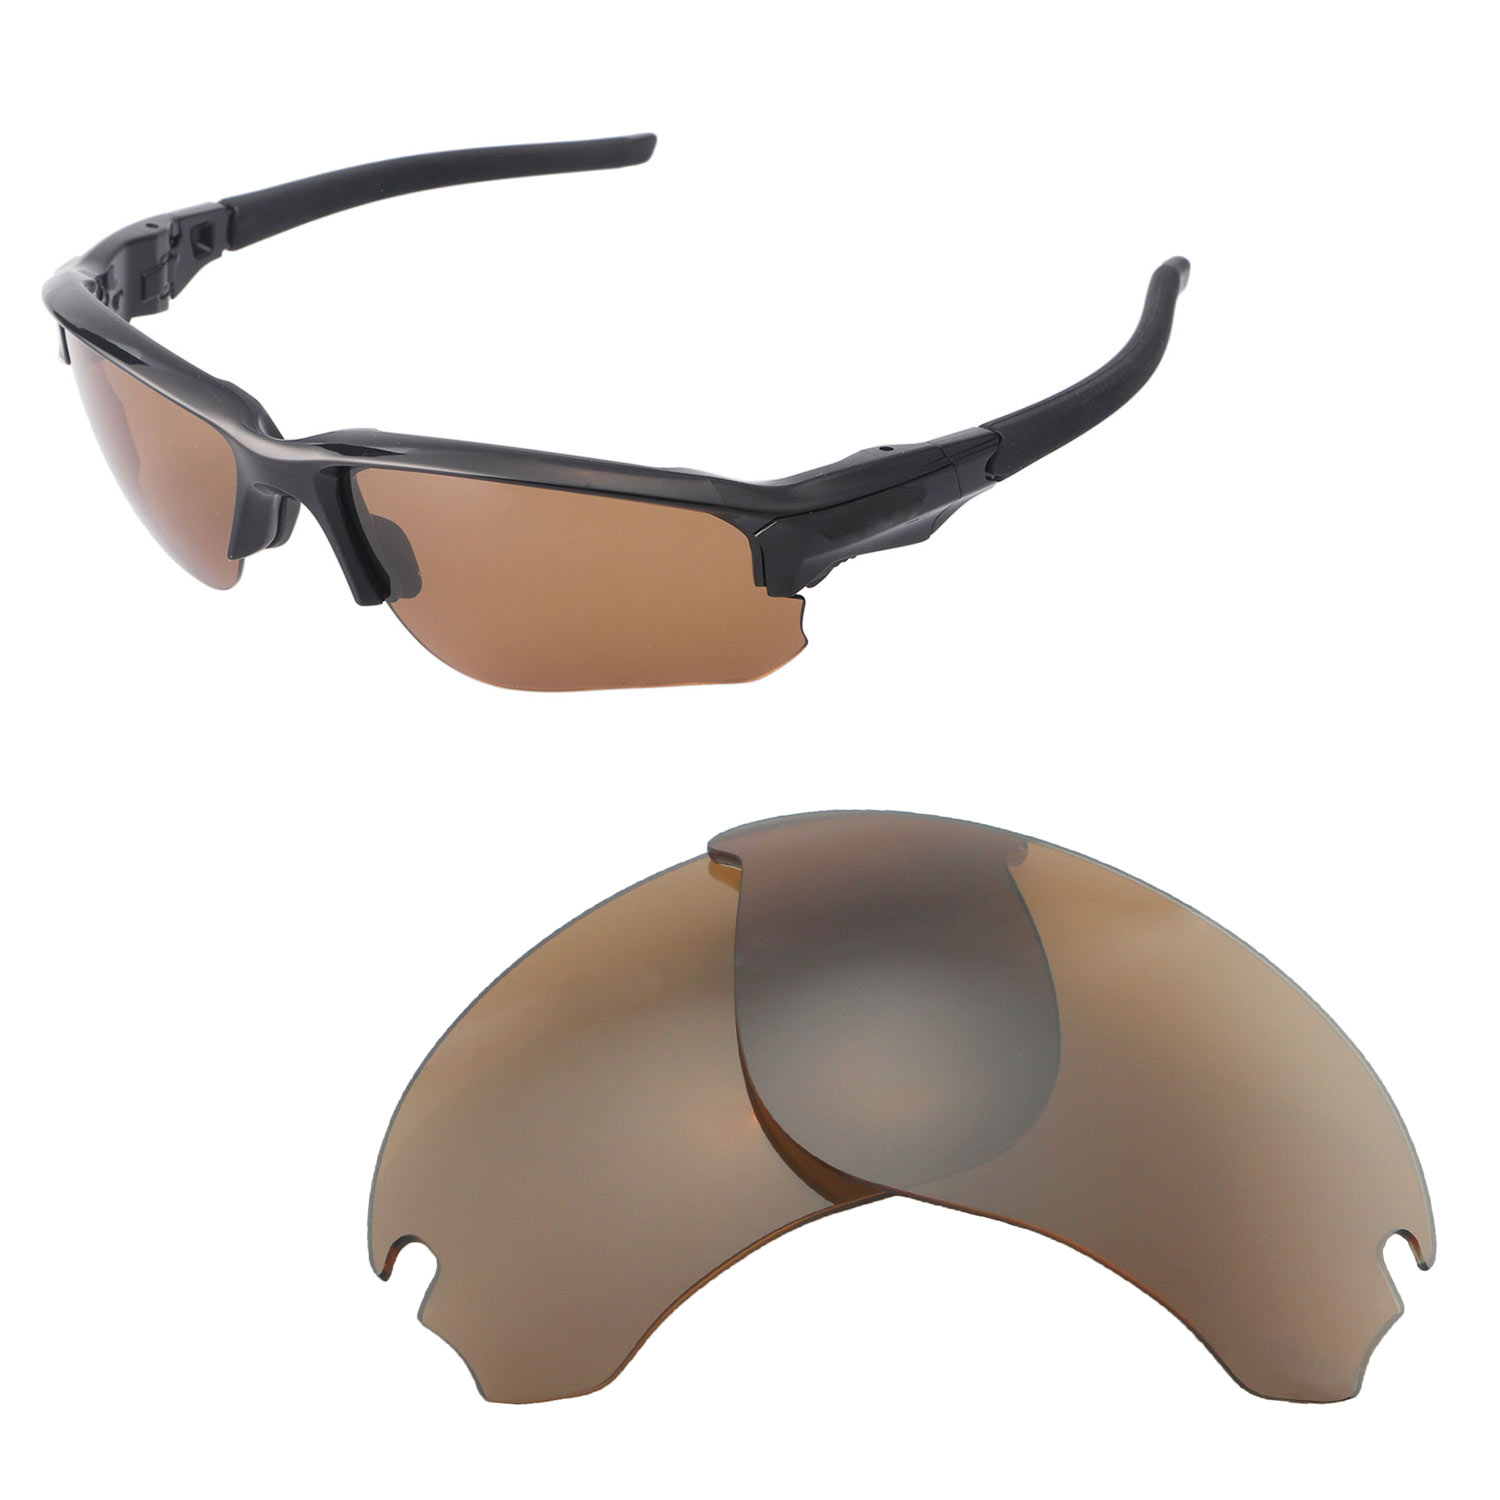 c12cac43961 Details about Walleva Brown Polarized Replacement Lenses For Oakley Flak  Draft Sunglasses